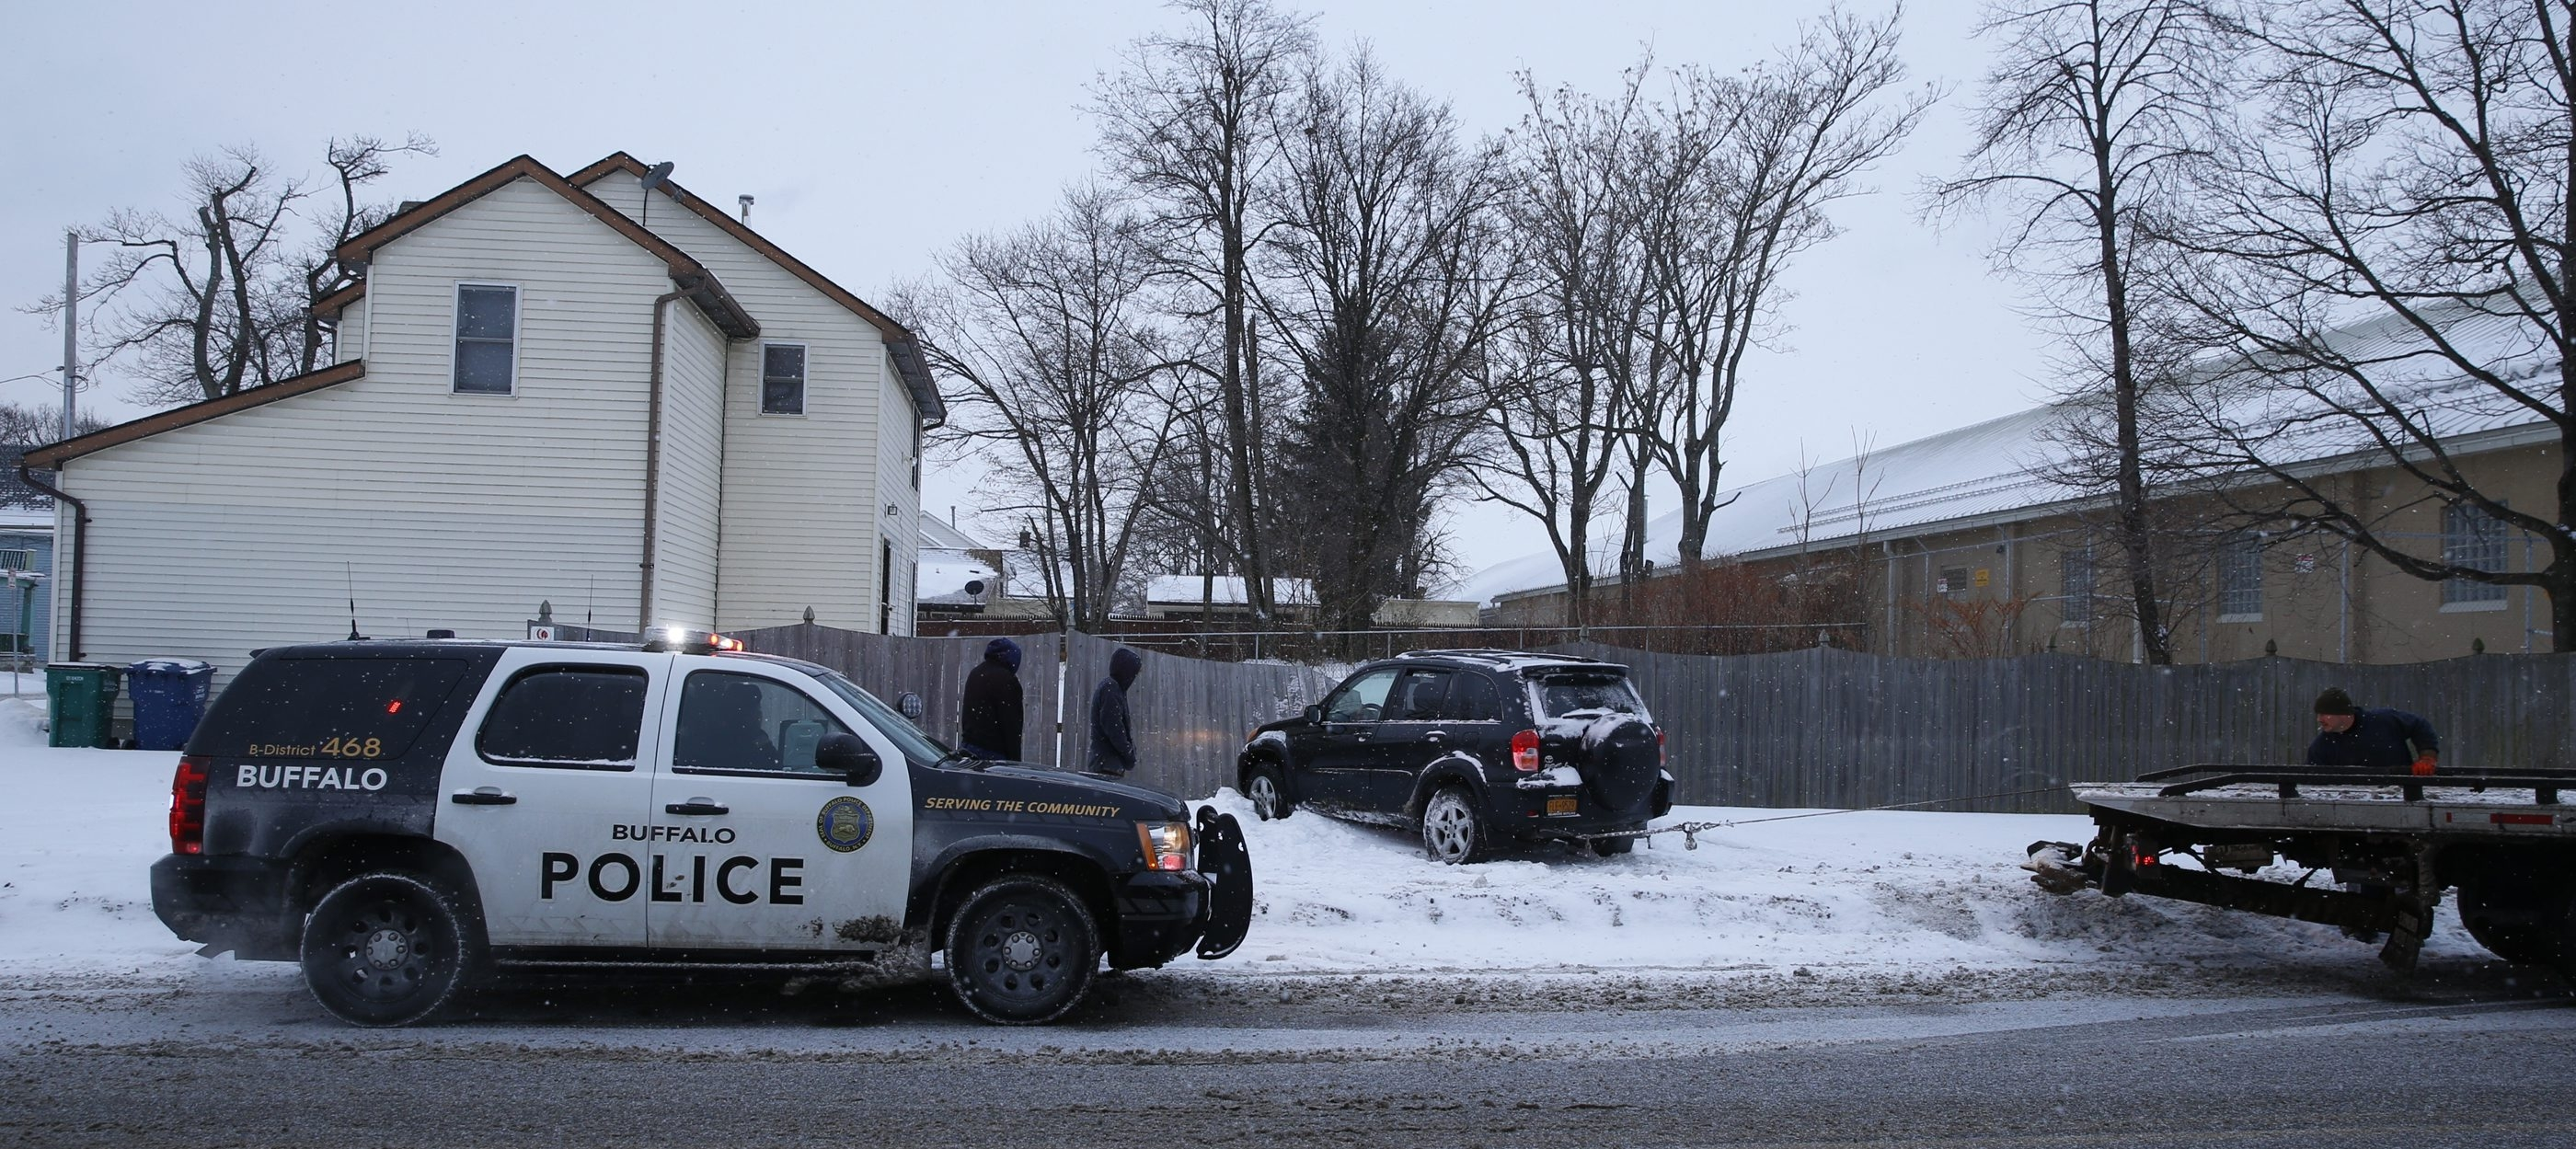 A car went off the road on Best Street and hit a fence on slick roads this morning on Tuesday, Jan. 27, 2015.    (John Hickey/Buffalo News)